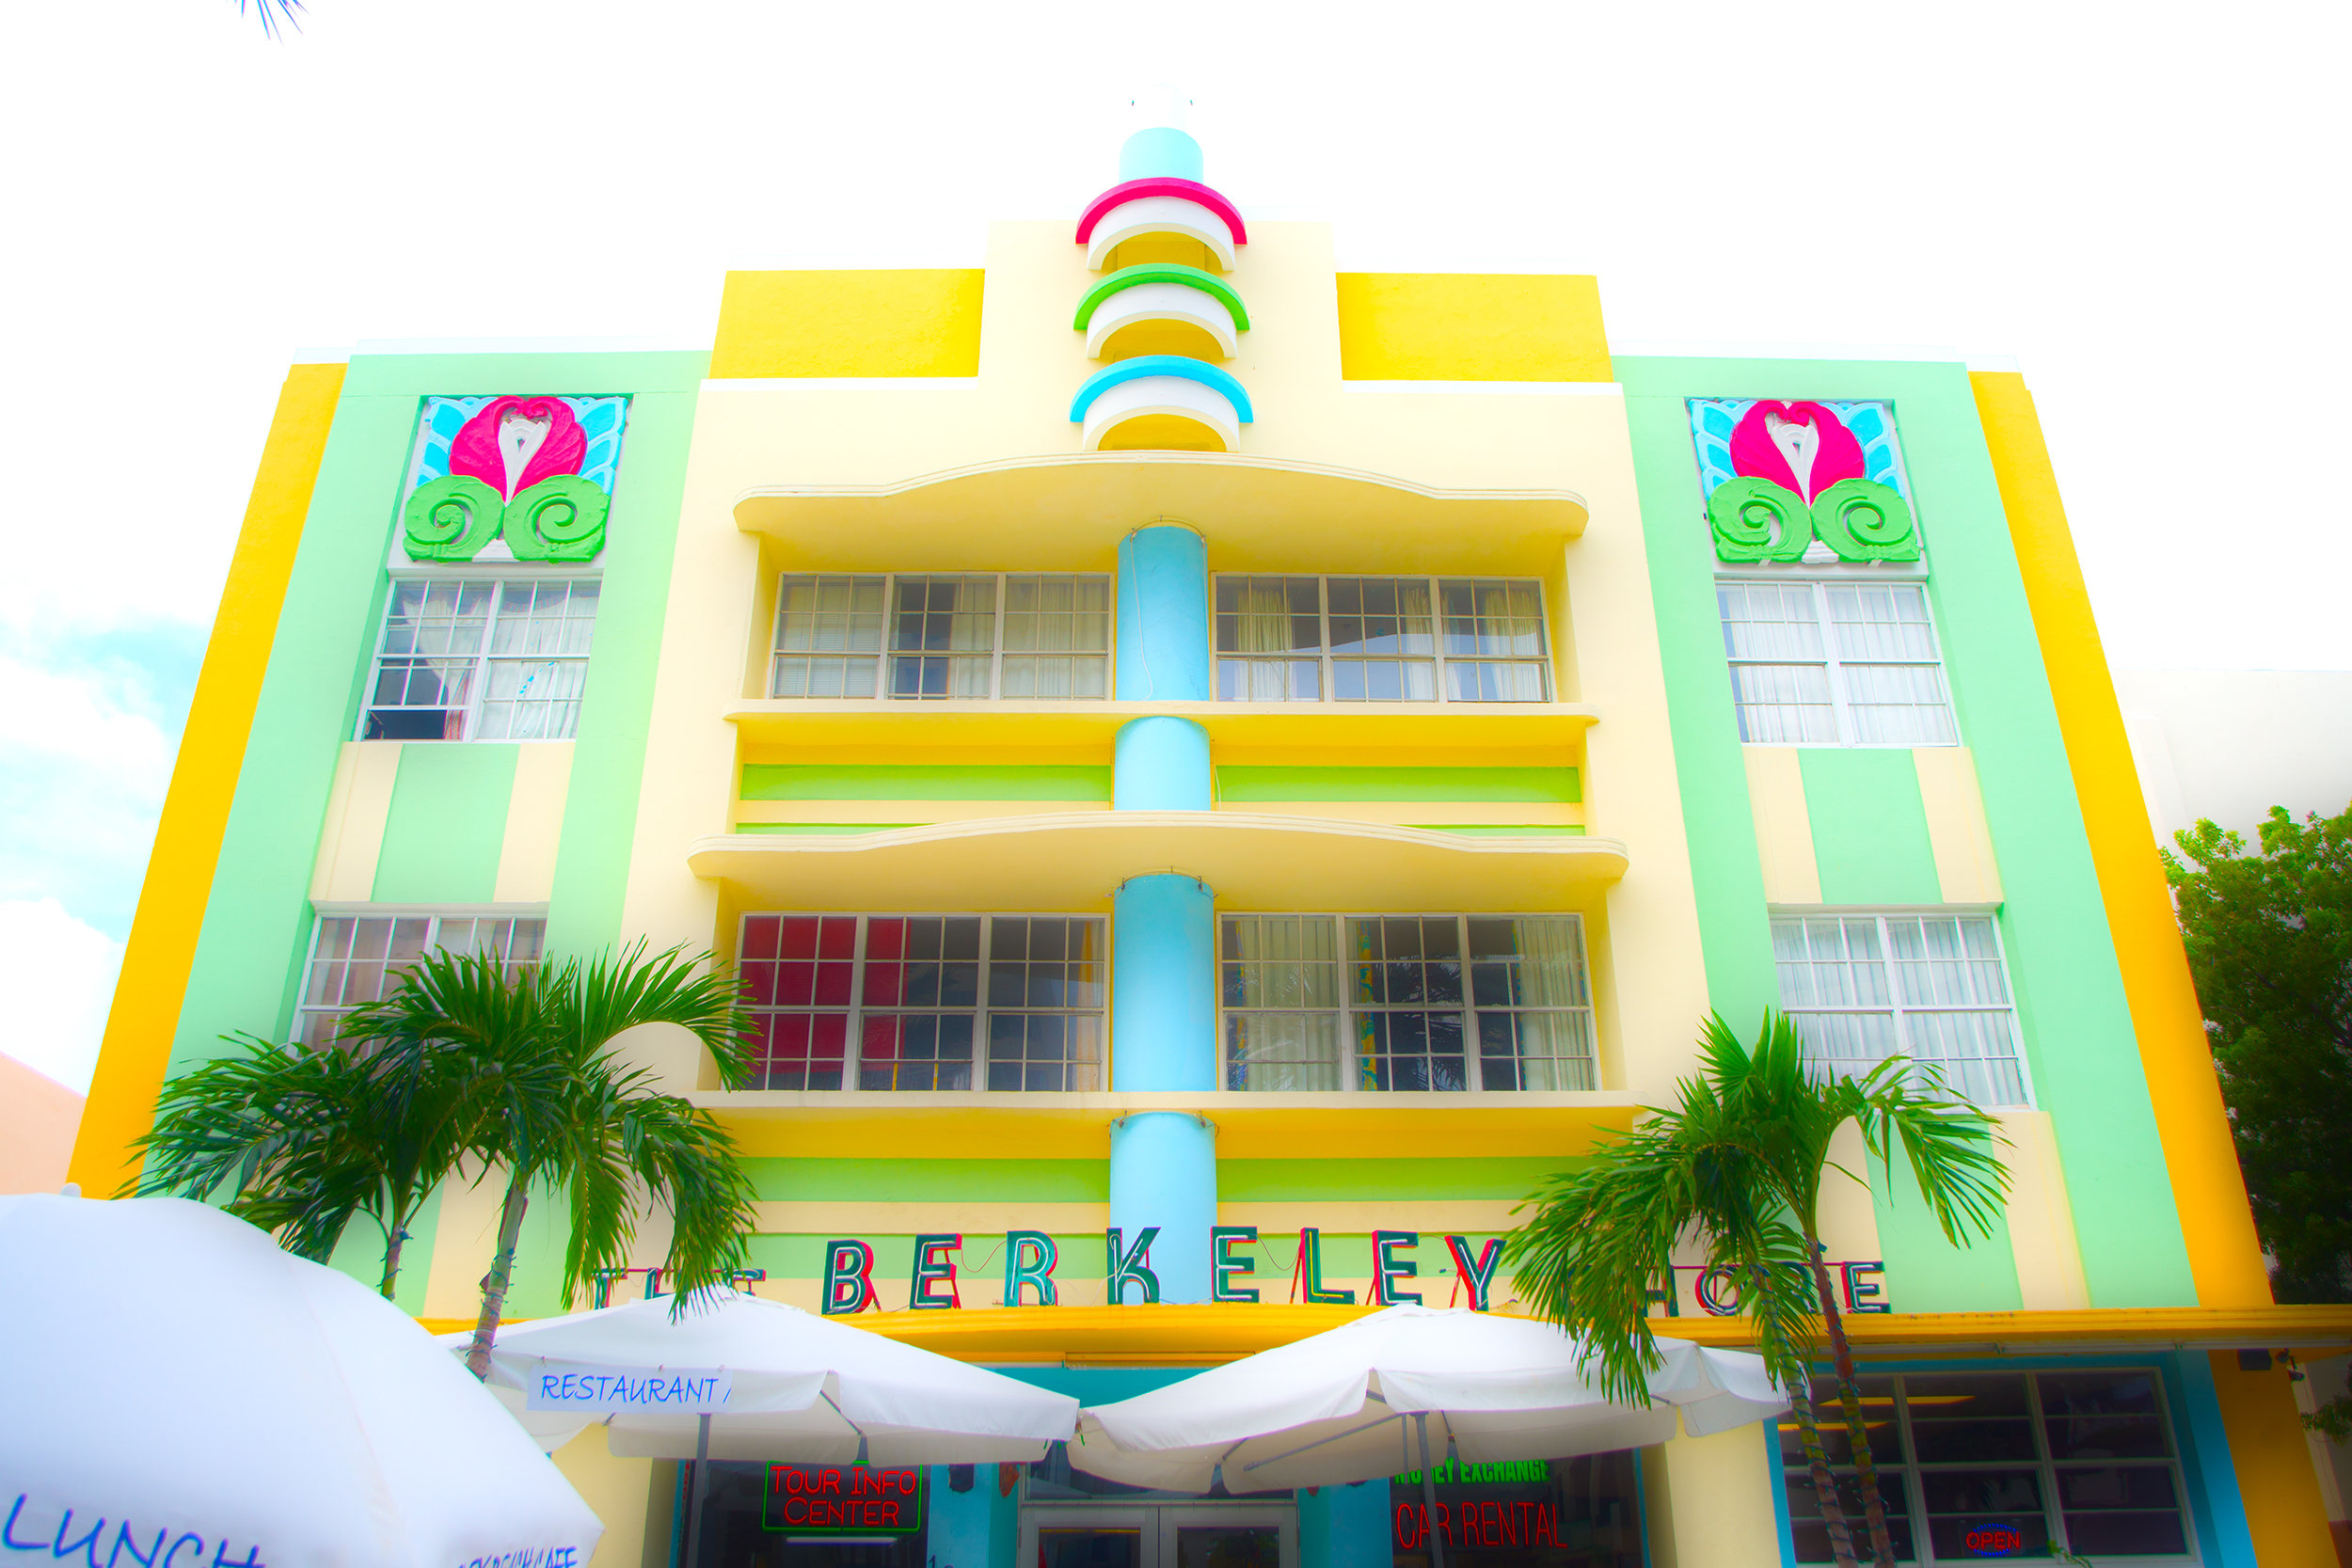 South Beach Deco Hotel no 2 web.jpg